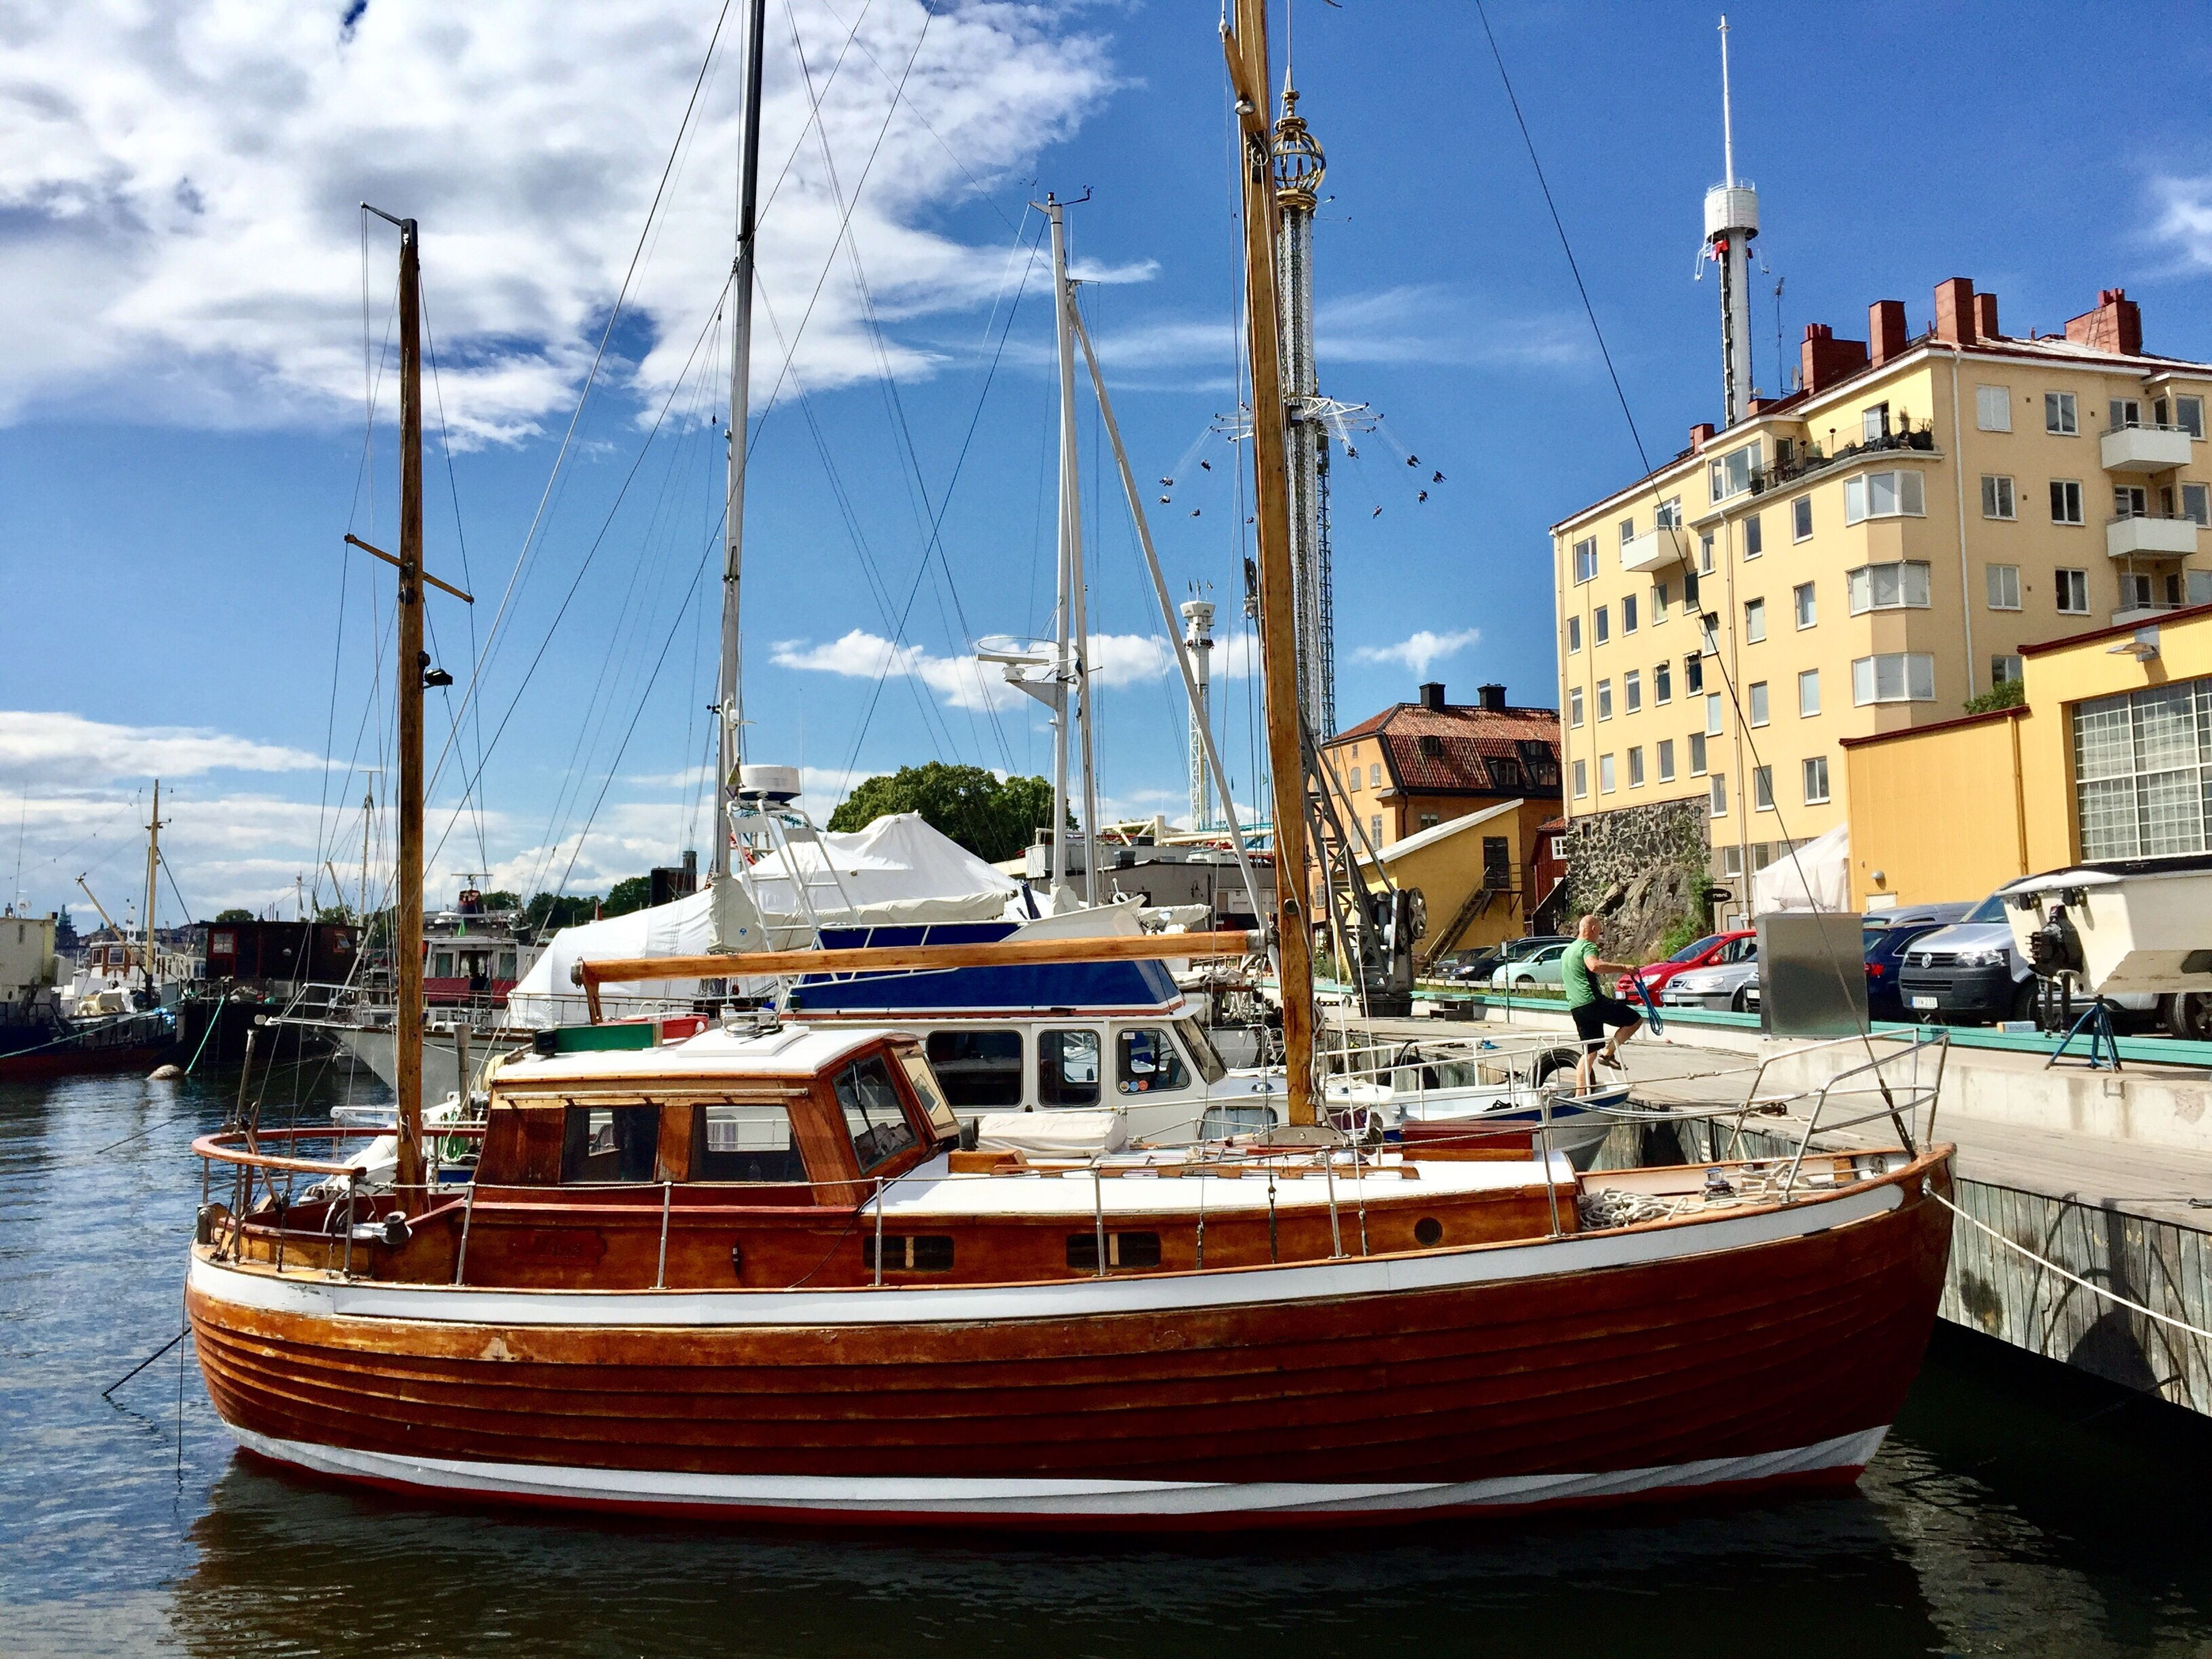 nautical vessel, mode of transport, transportation, moored, boat, building exterior, mast, sky, architecture, built structure, day, outdoors, water, waterfront, harbor, sailboat, no people, cloud - sky, sea, nature, yacht, city